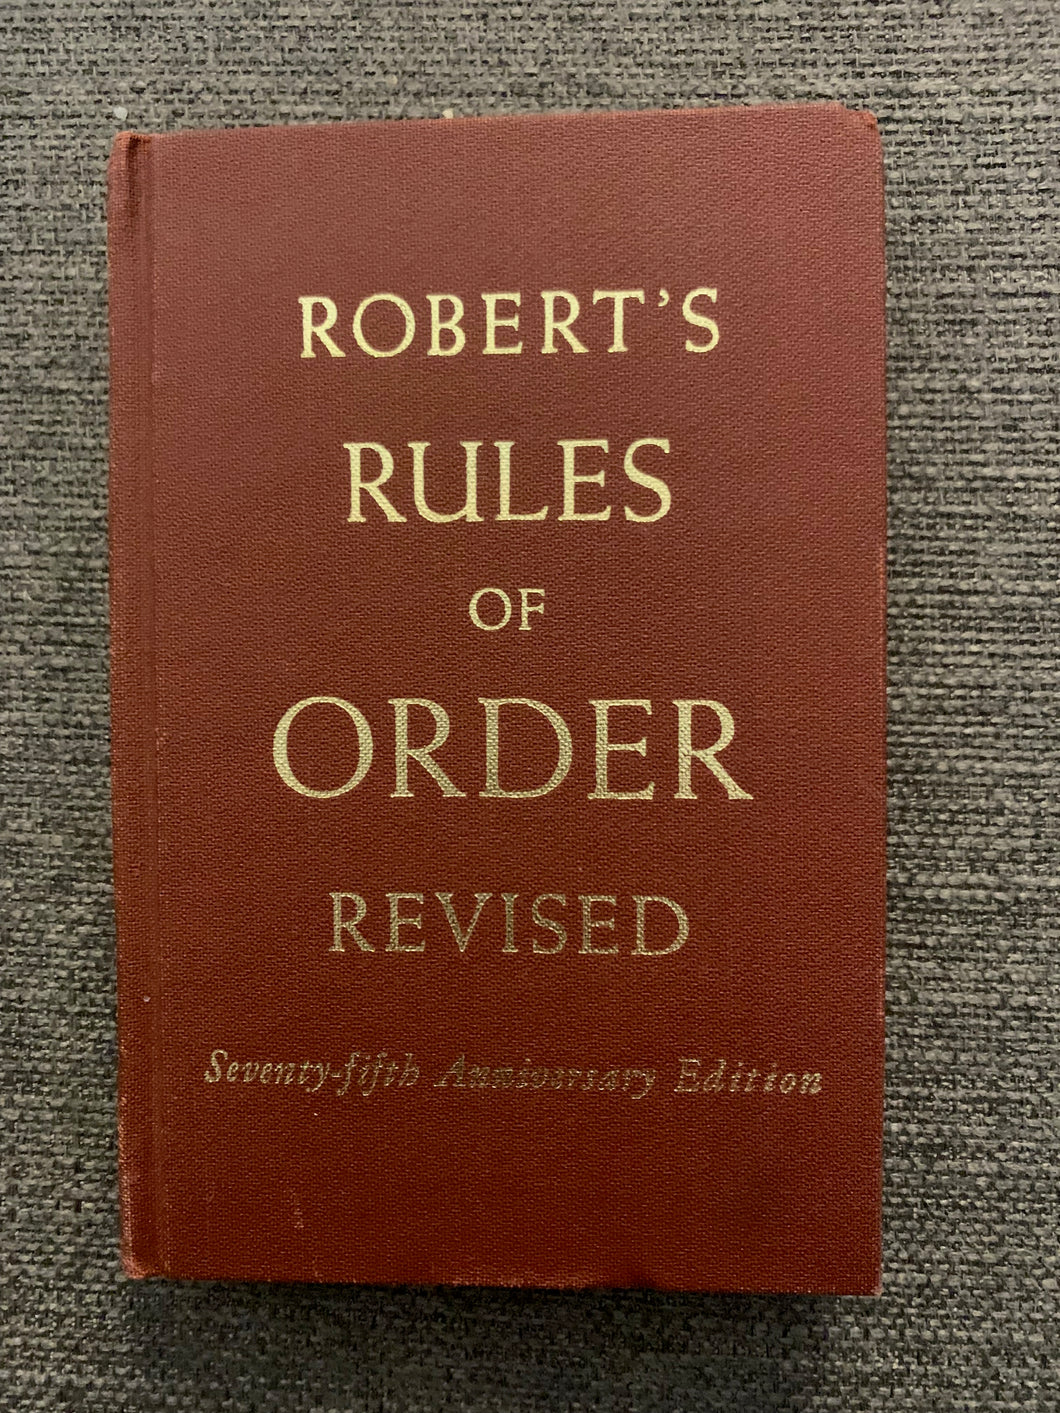 Robert's Rules of Order Revised: Seventy-fifth Anniversary Edition by Henry M. Roberts